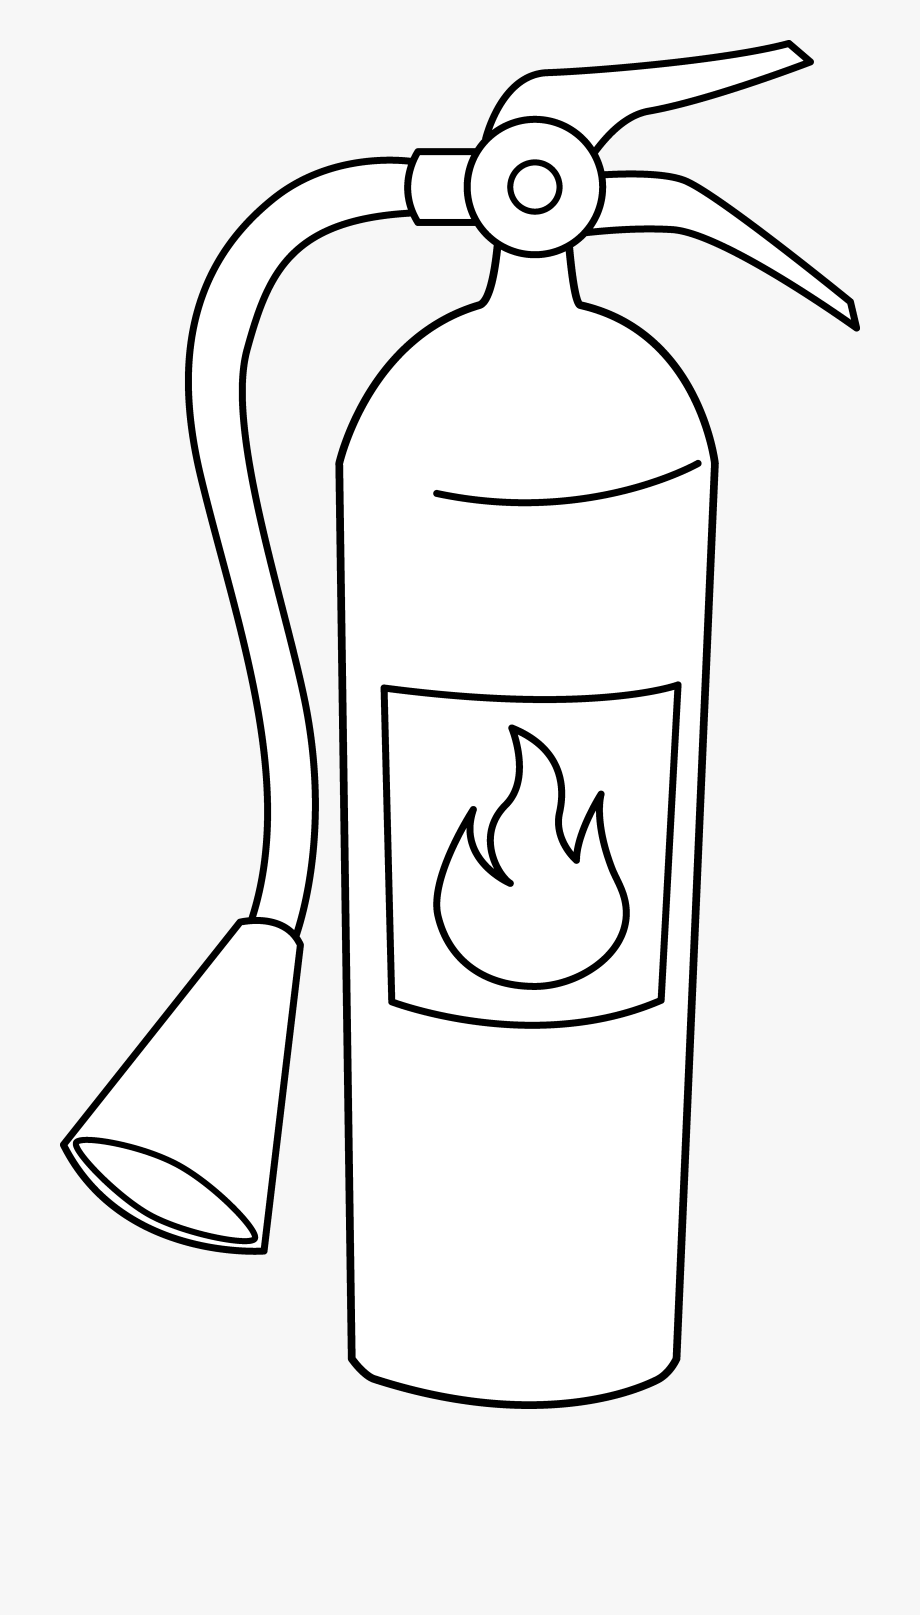 Clipart Fire Extinguisher.